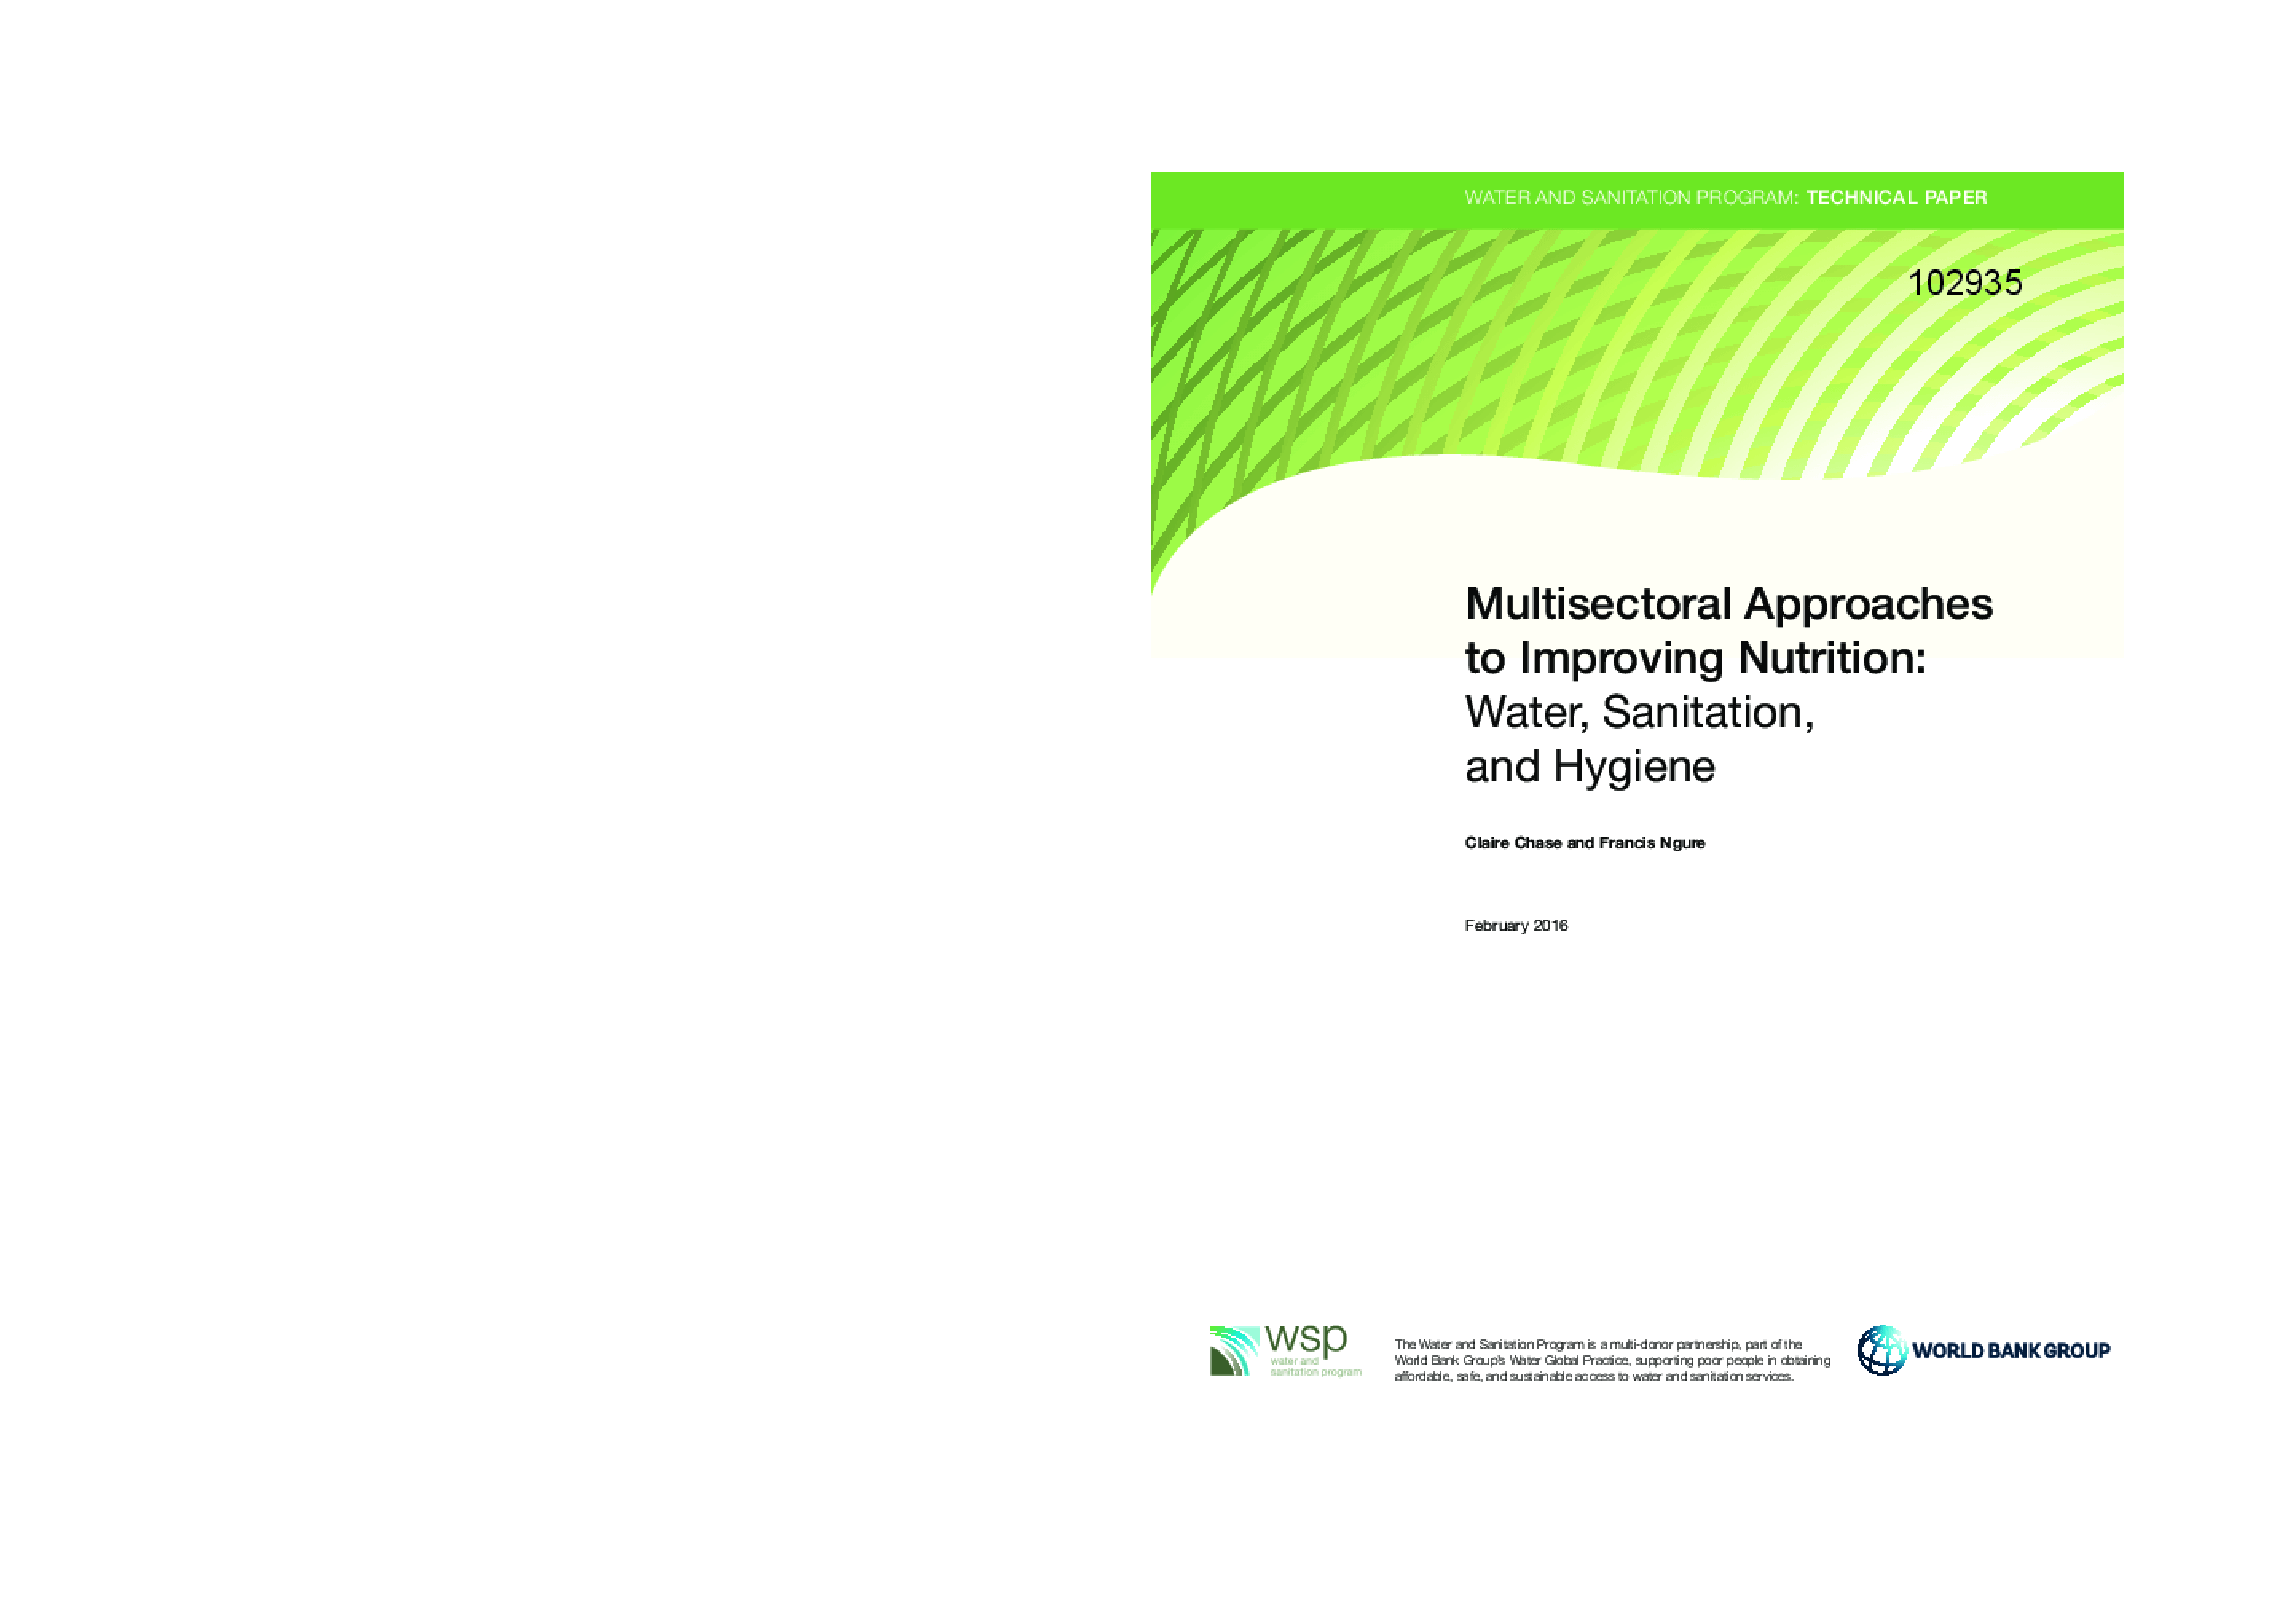 Multisectoral Approaches to Improving Nutrition: Water, Sanitation, and Hygiene